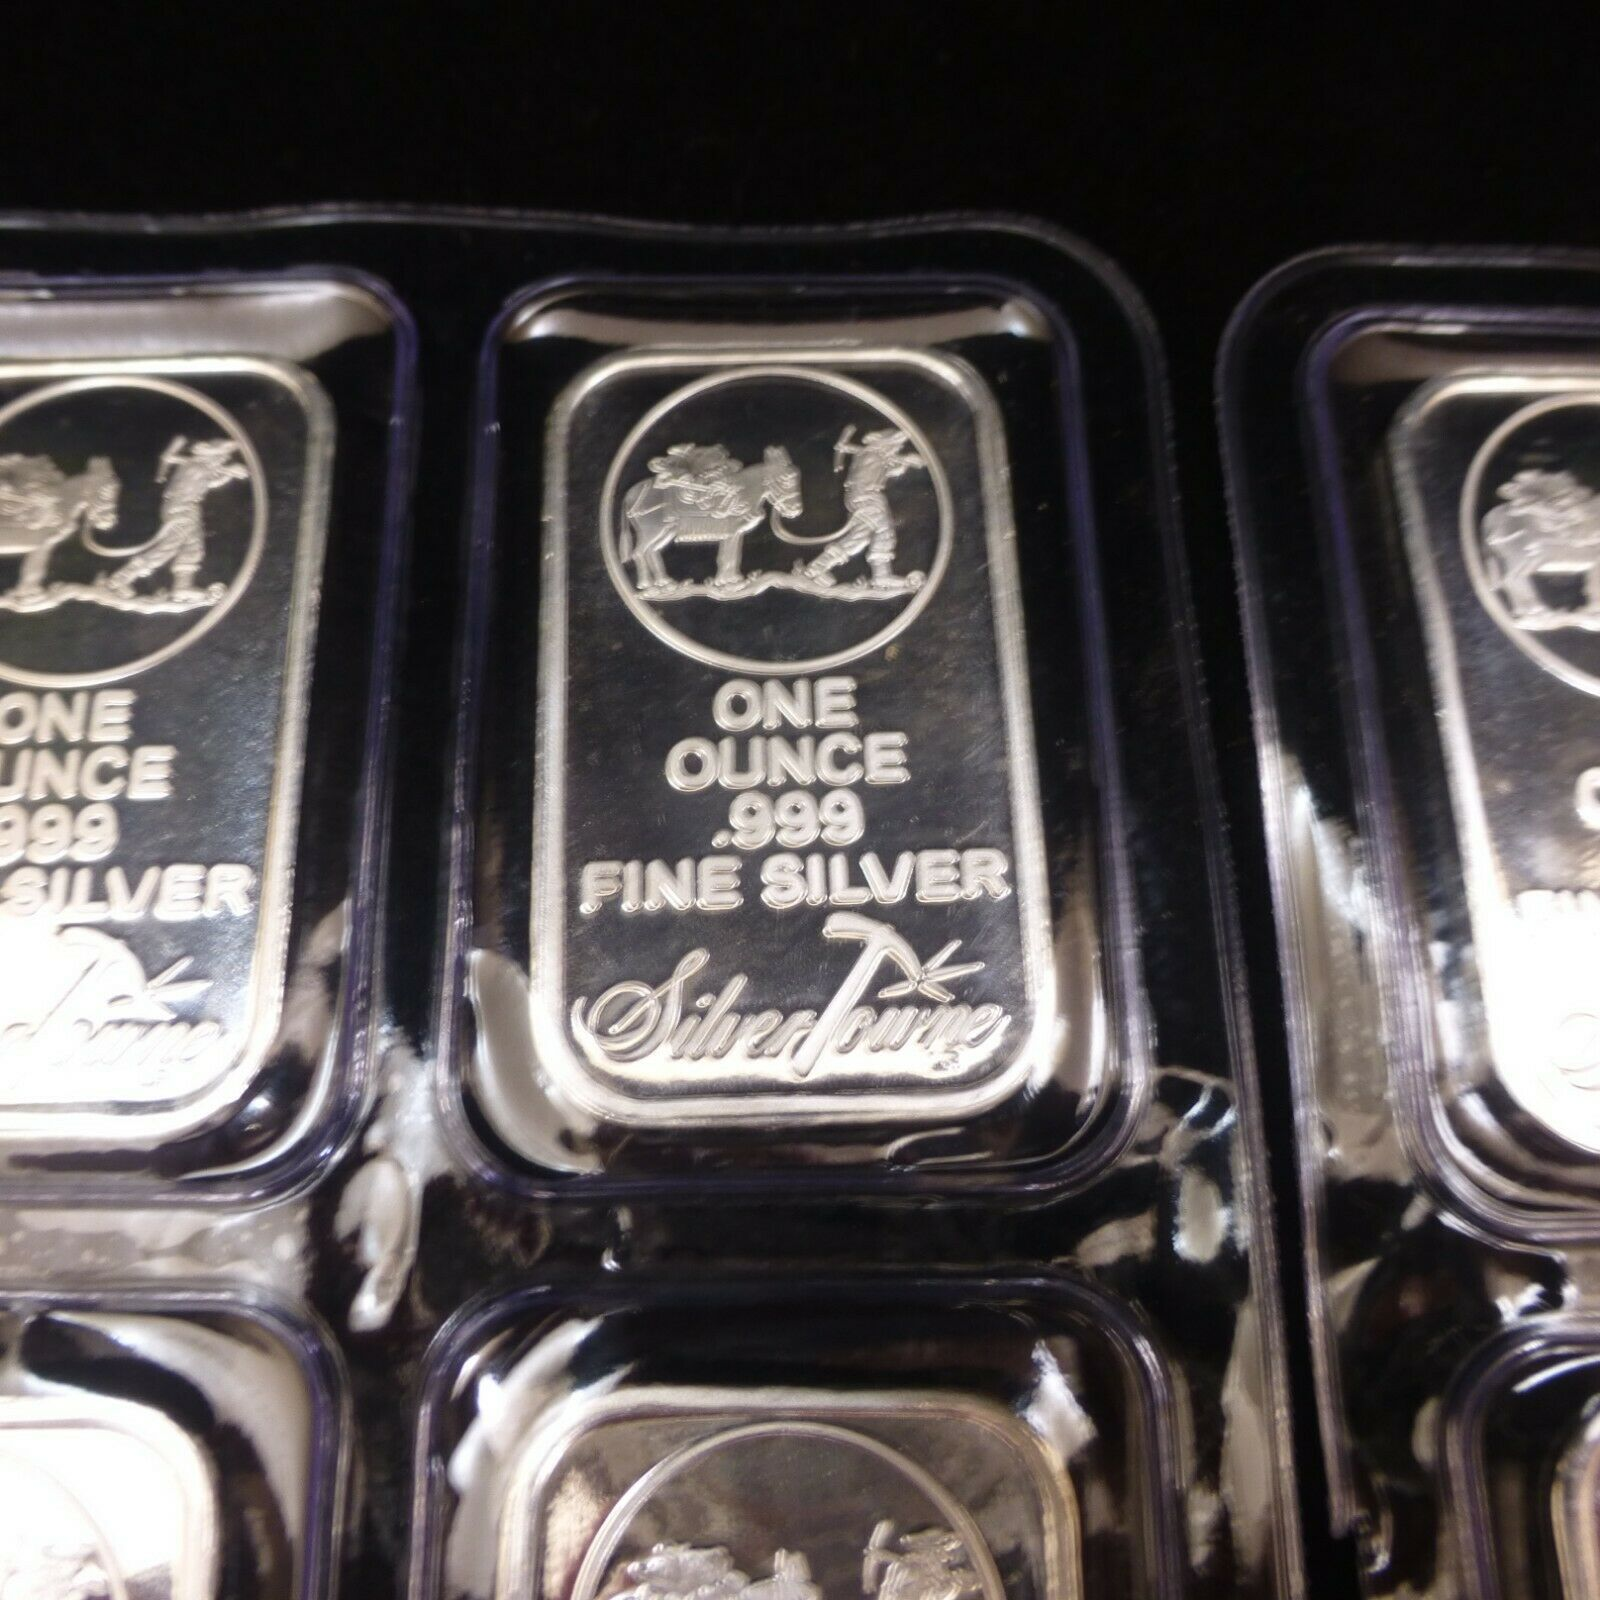 LOT OF 50 SilverTowne Prospector 1oz .999 Pure Silver Bars Mint New Unopened image 2